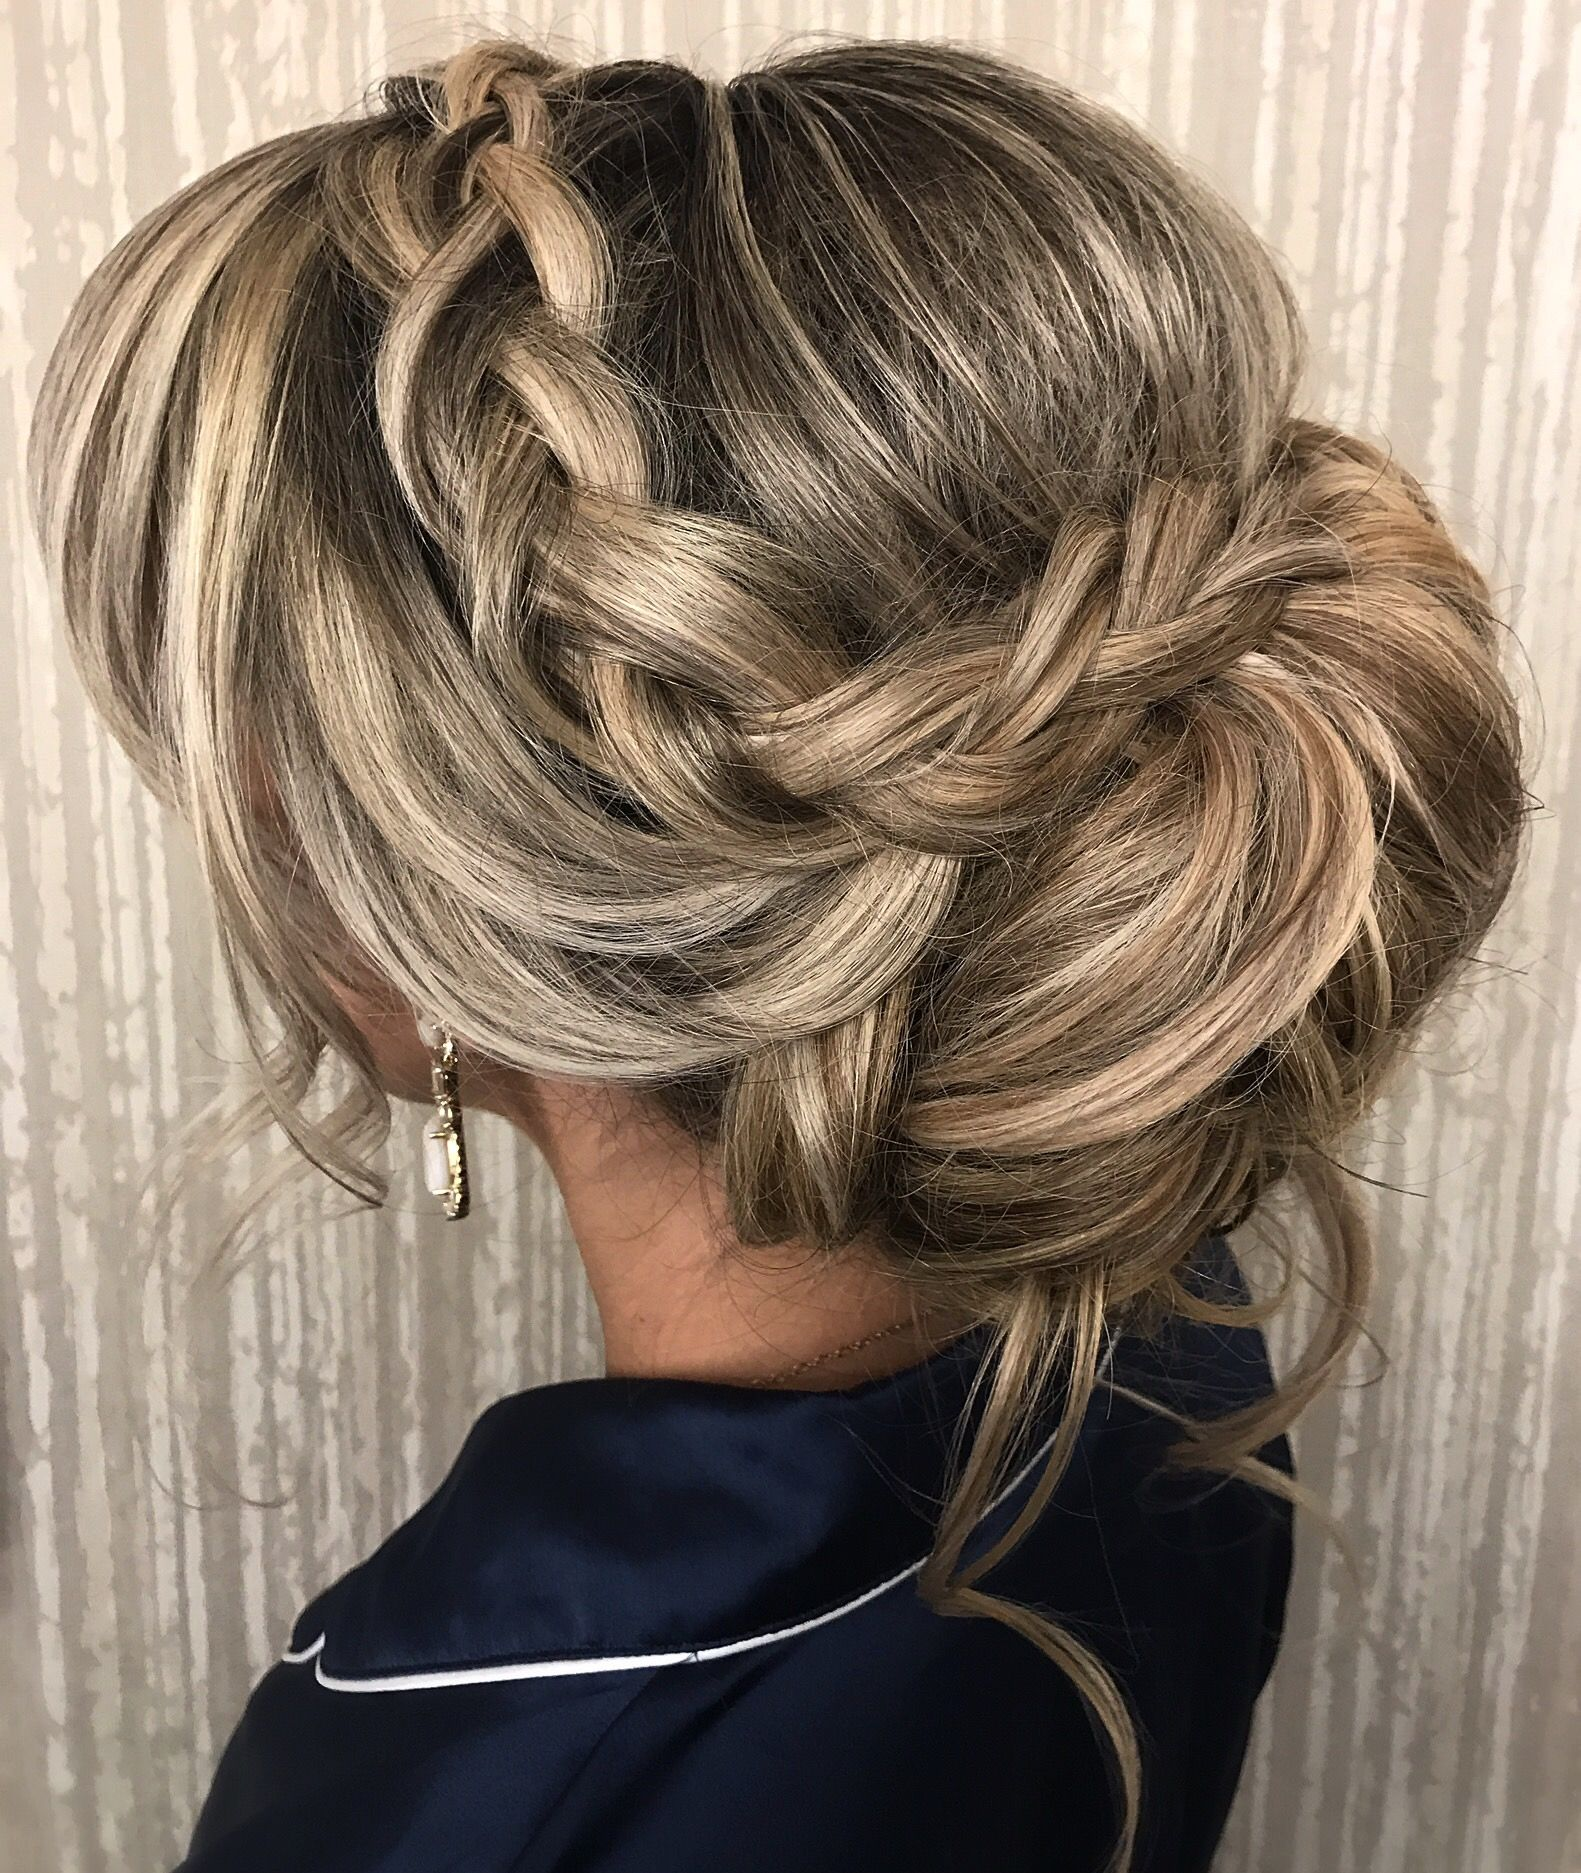 Pin by tt on hair pinterest updo hair style and bouffant